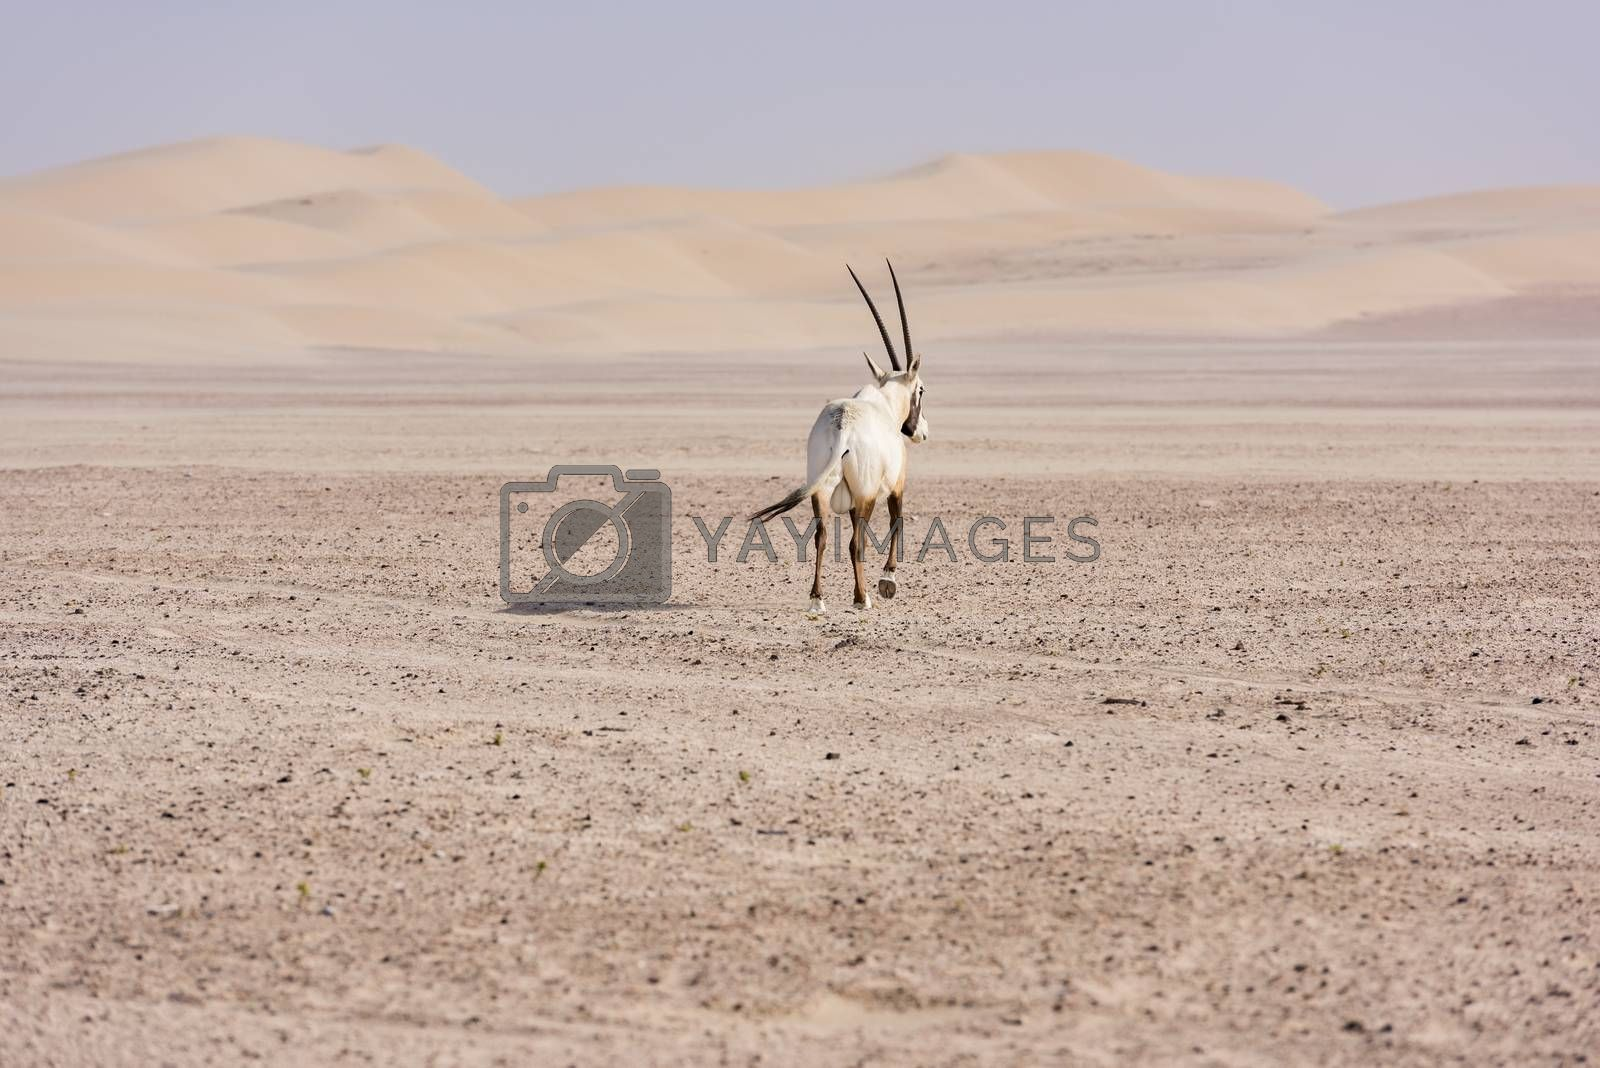 An Arabian oryx in Dubai Desert, United Arab Emirates by GABIS